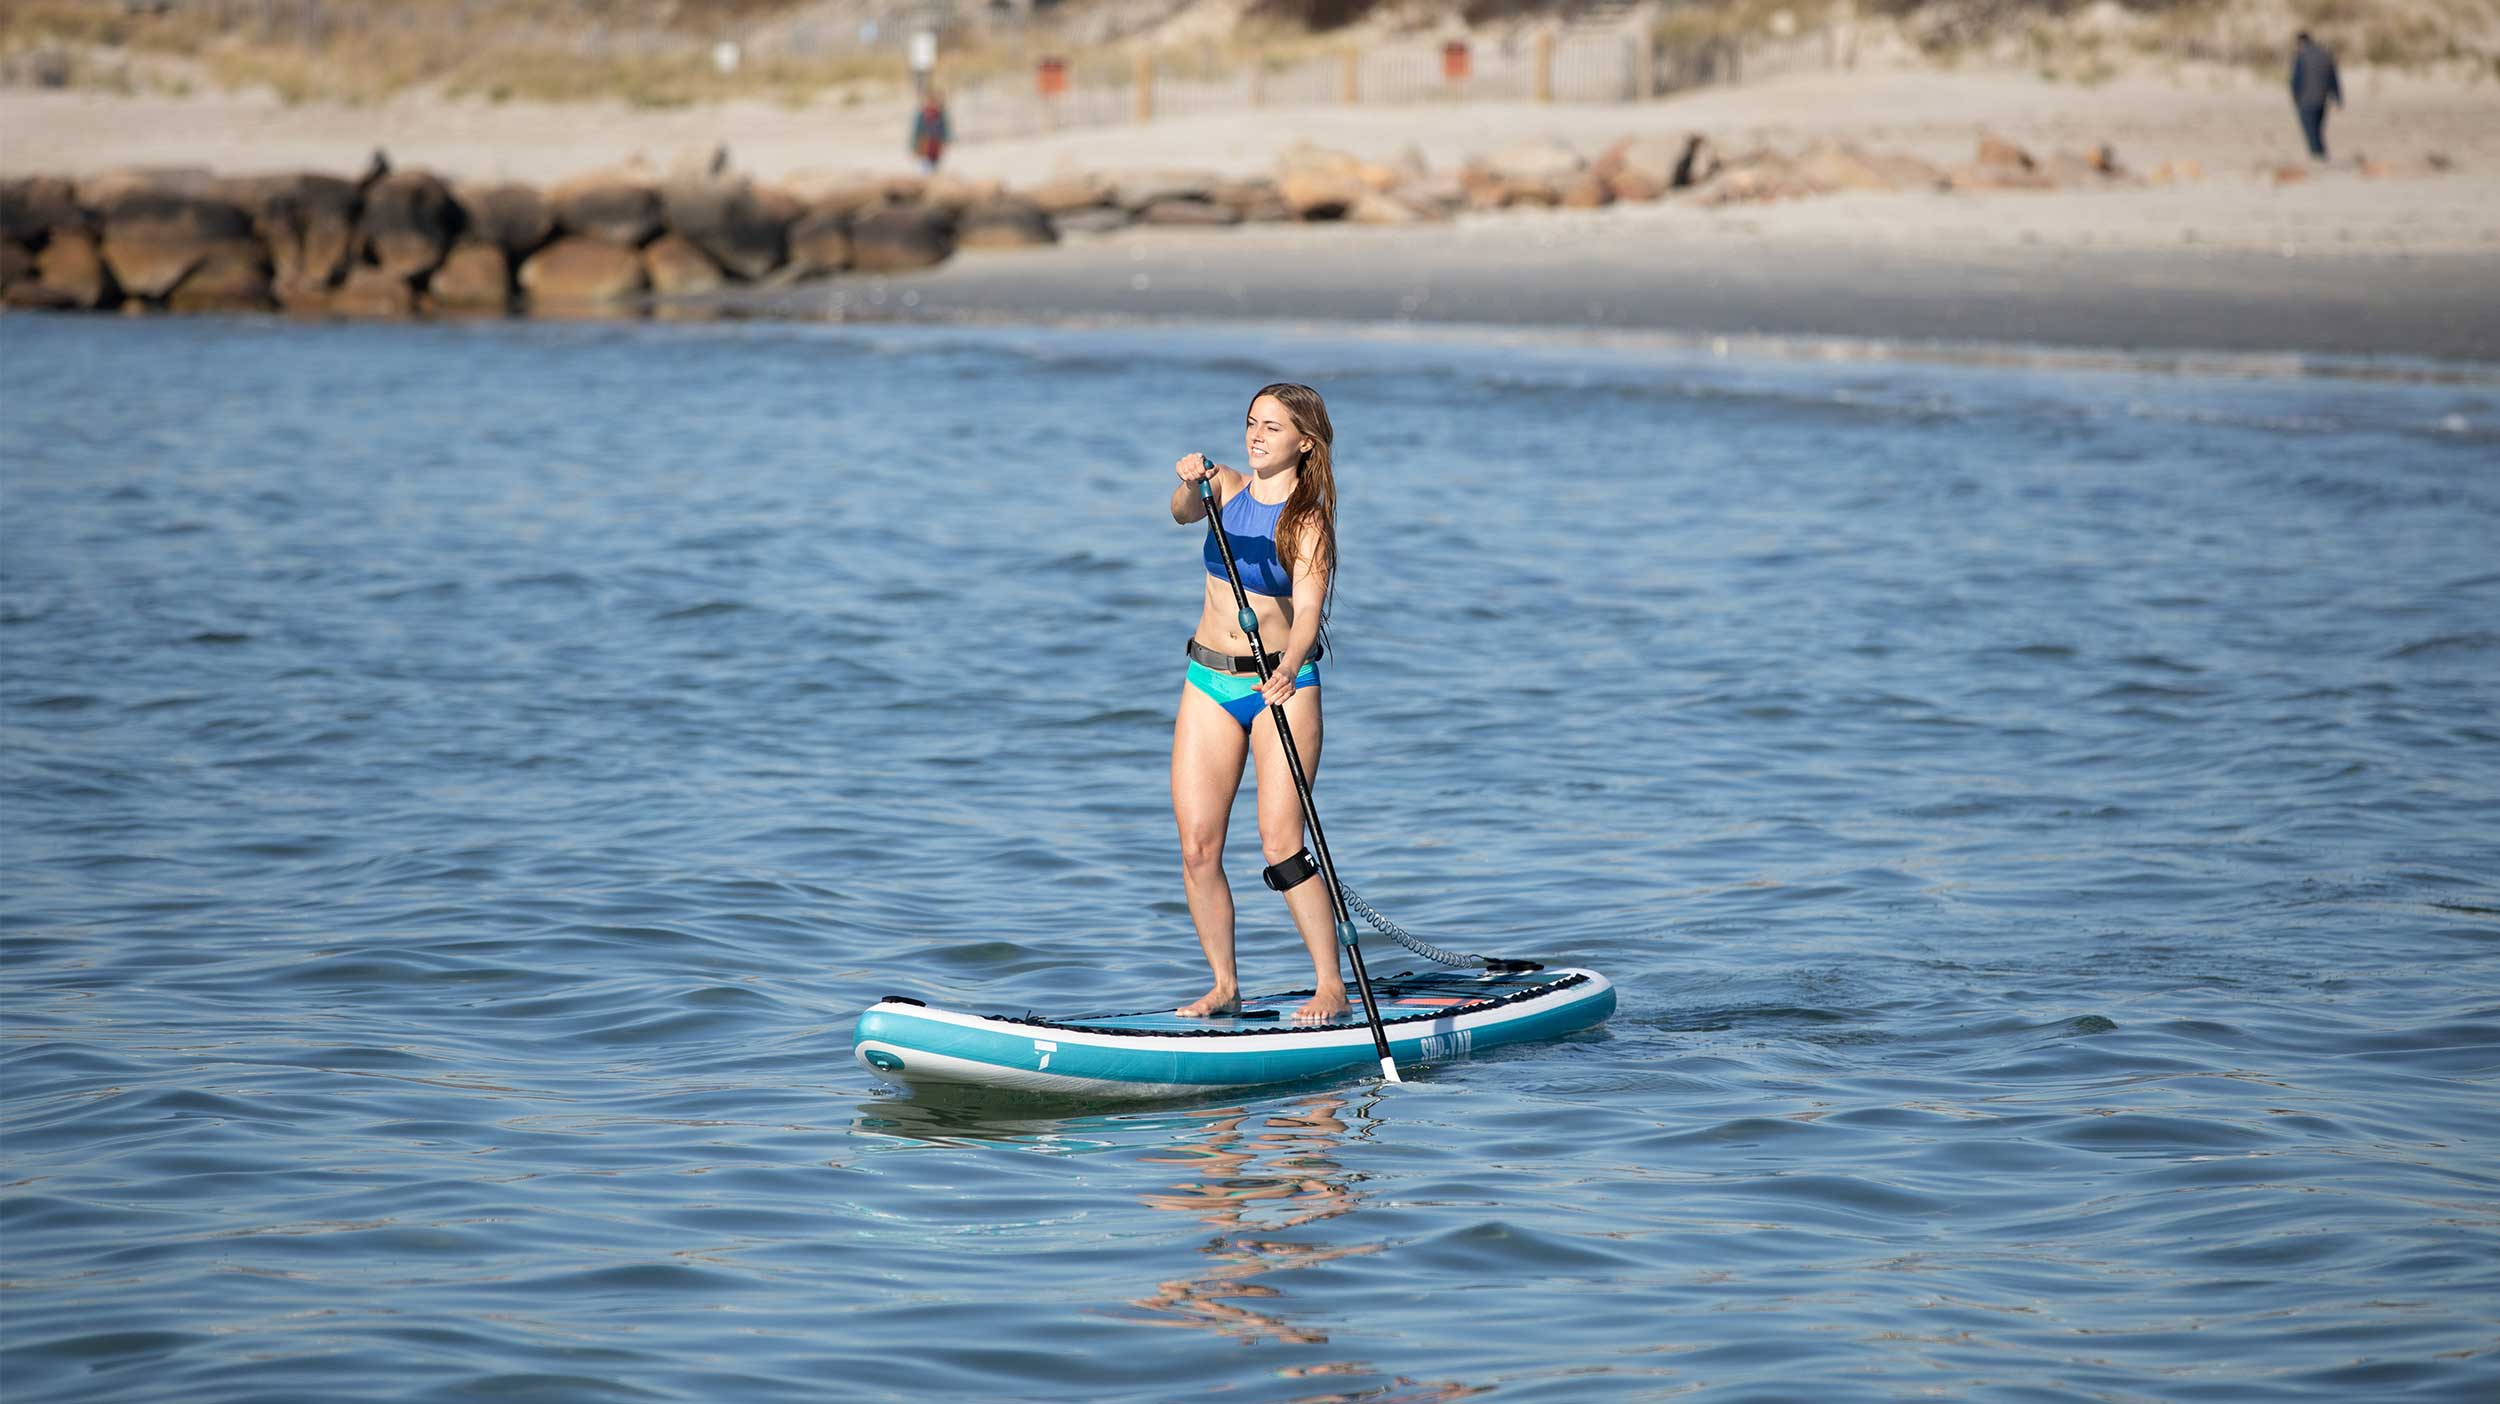 TAHE_SUP_inflatable_woman_on_water_2500_1404